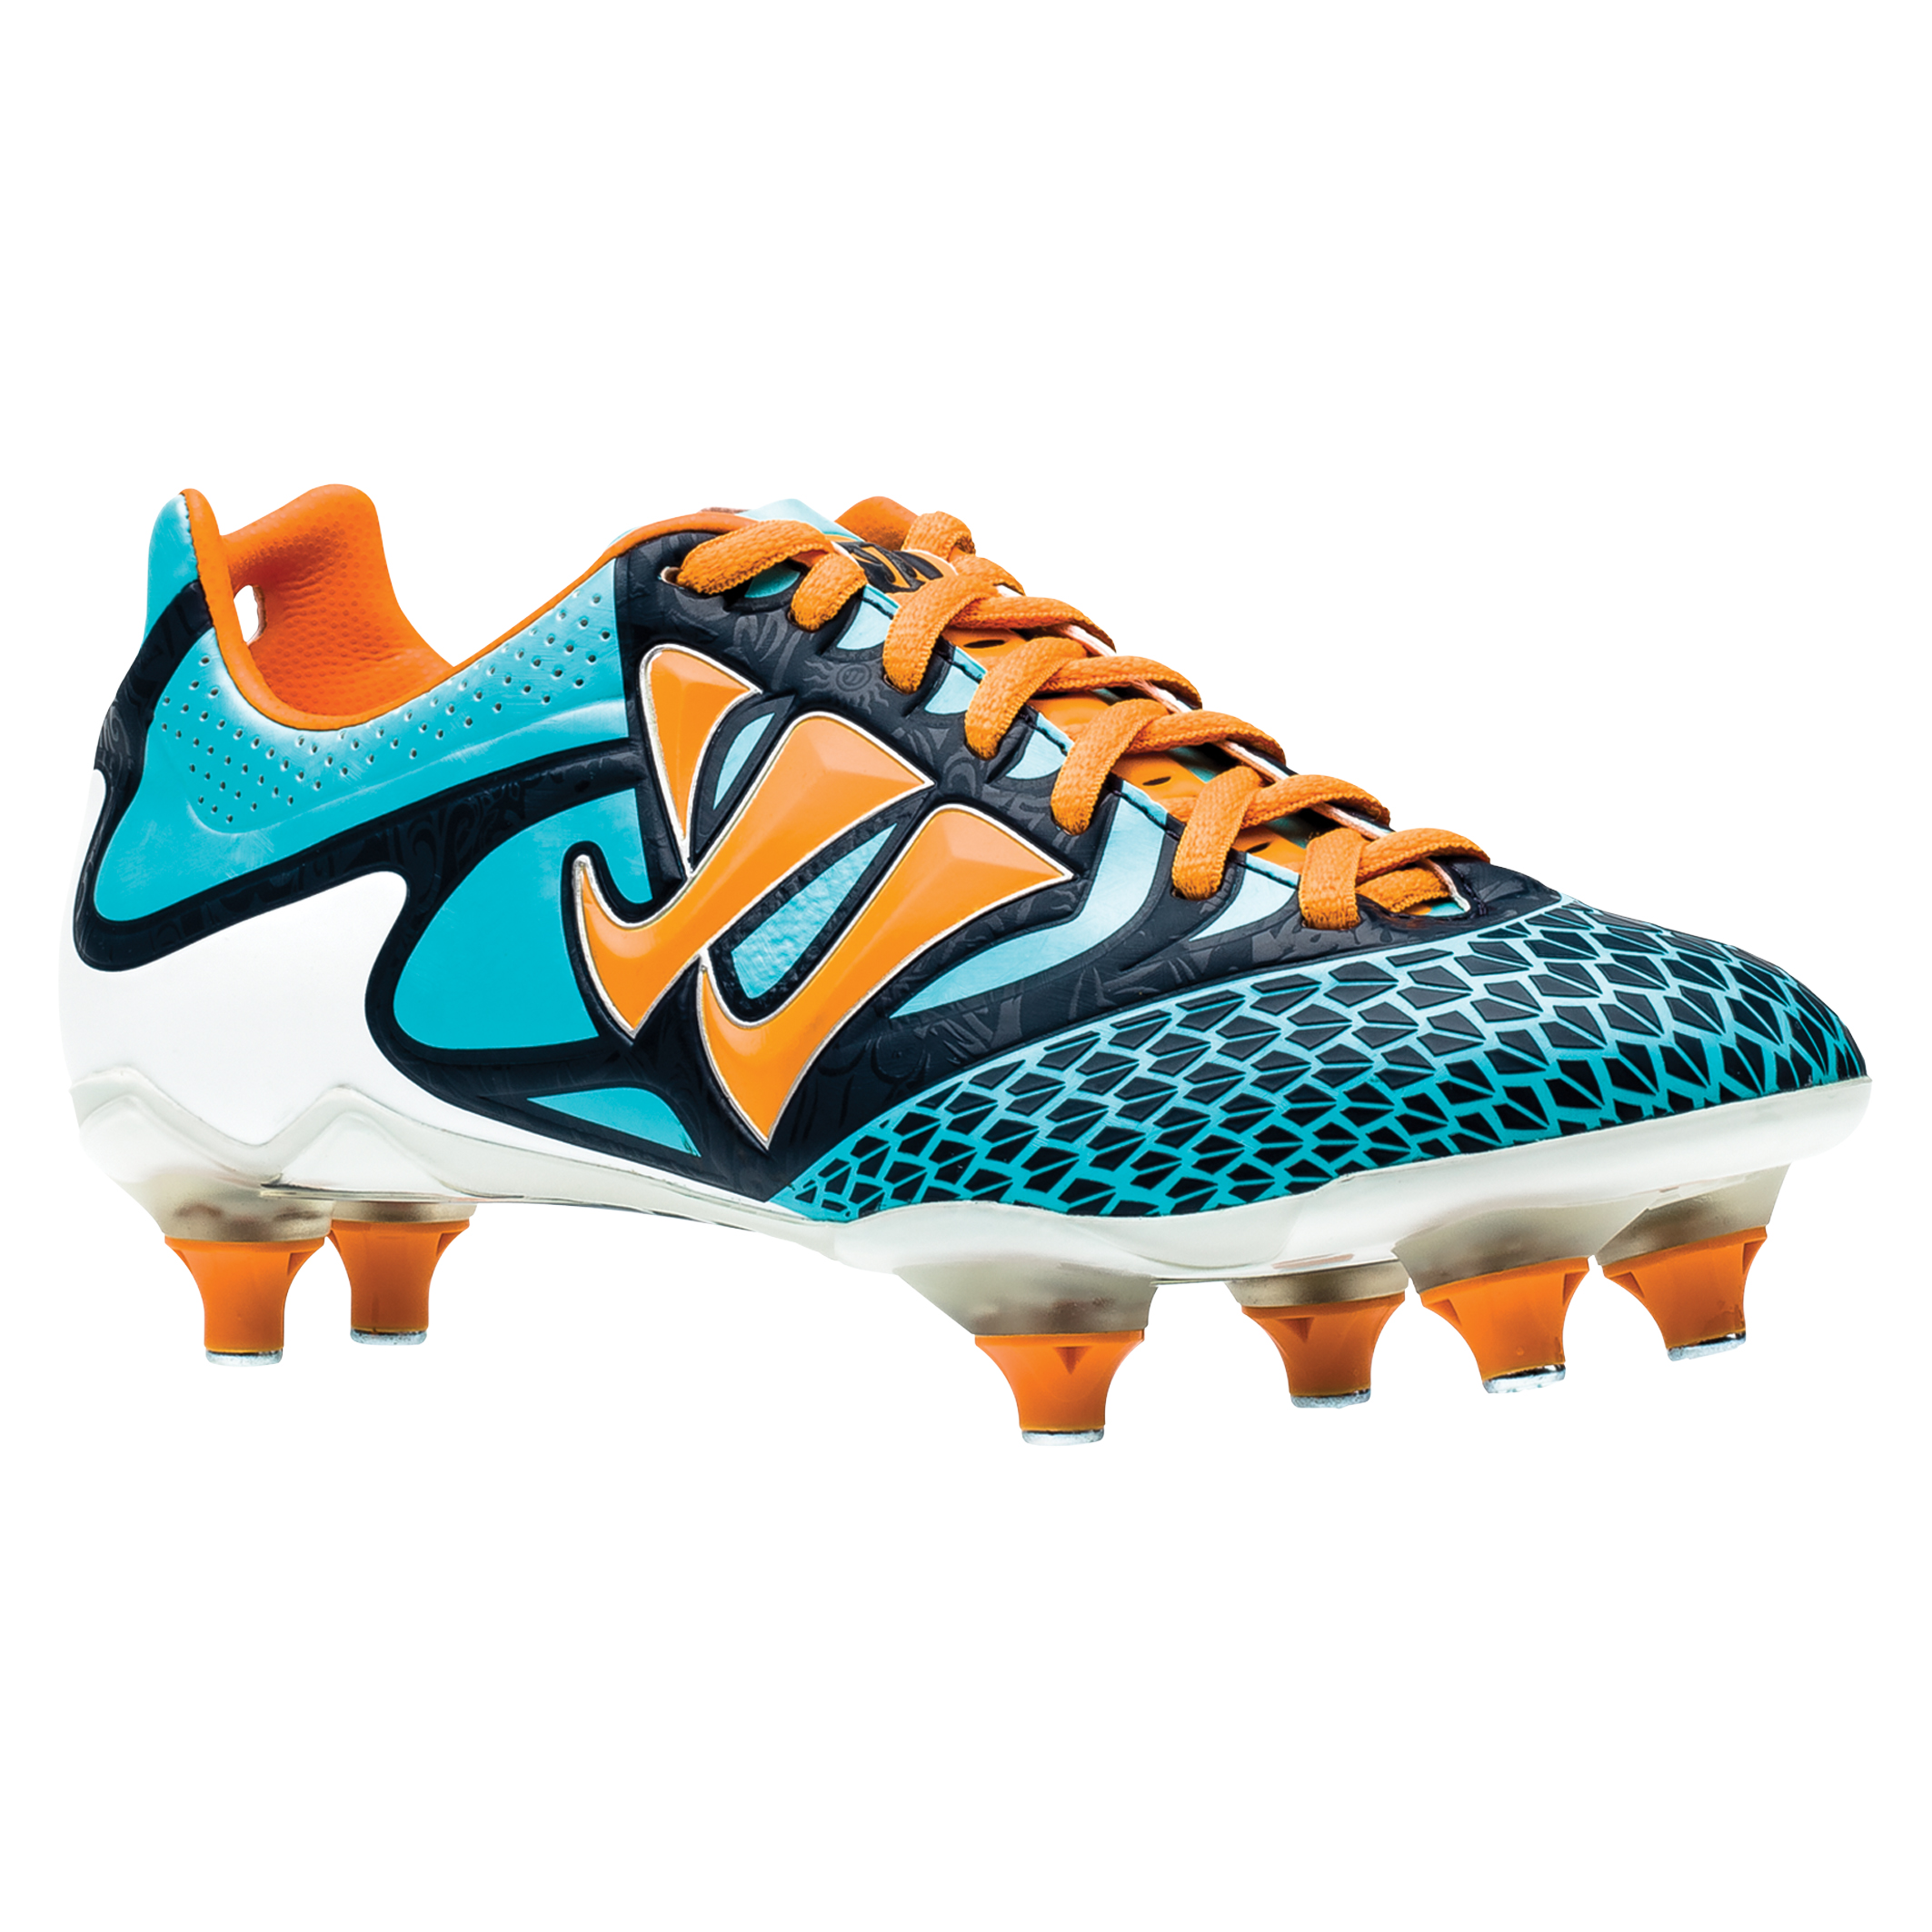 Warrior Sports Skreamer Combat Soft Ground Football Boots - Blue Radiance/Bright Marigold/Insignia Blue - Kids